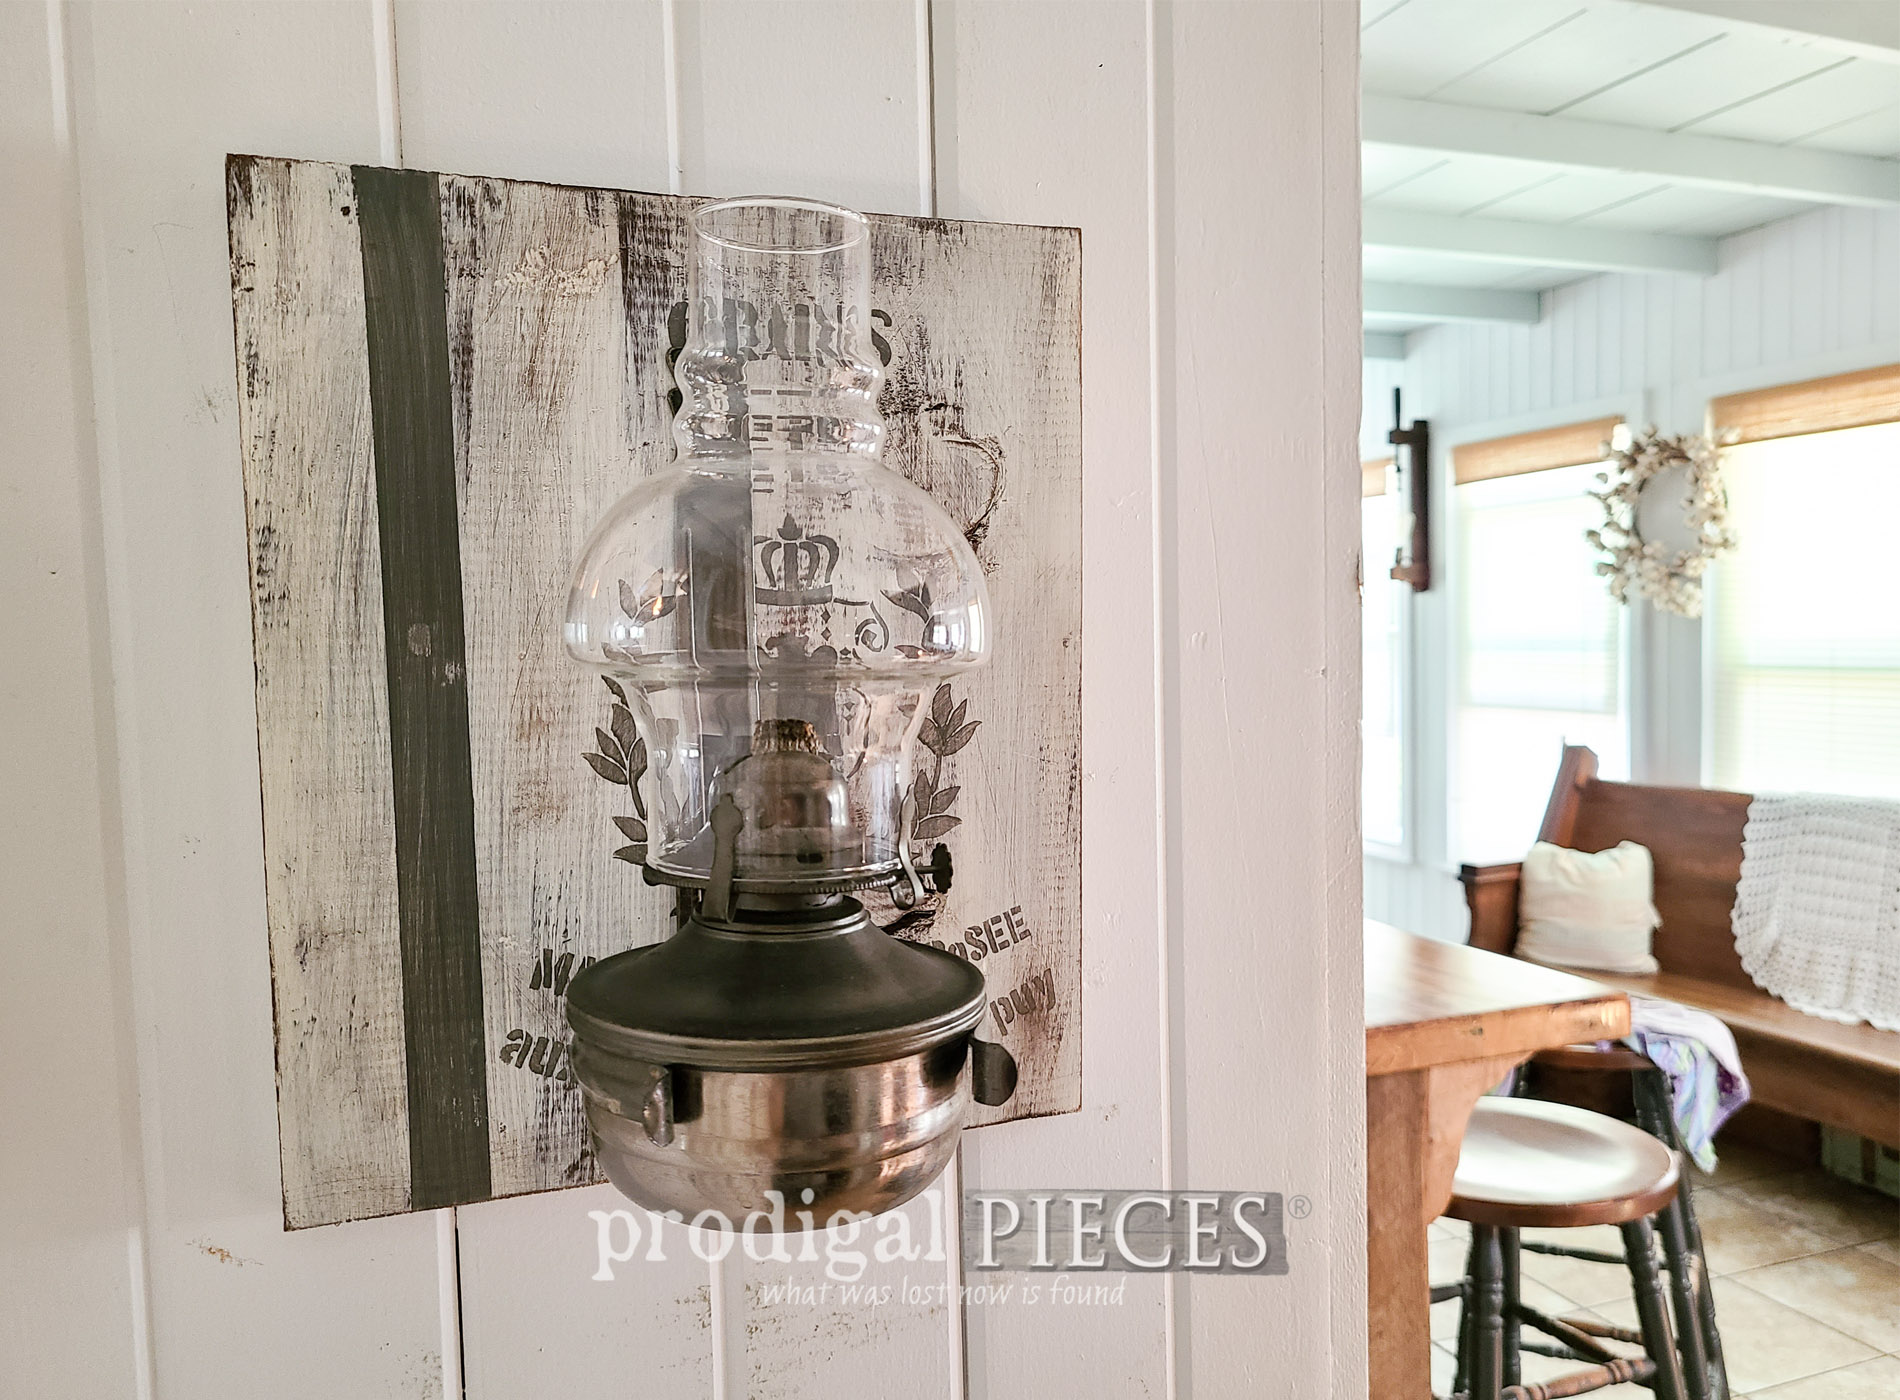 Featured Rustic Chic Home Decor from Thrifted Finds by Larissa of Prodigal Pieces | prodigalpieces.com #prodigalpieces #farmhouse #diy